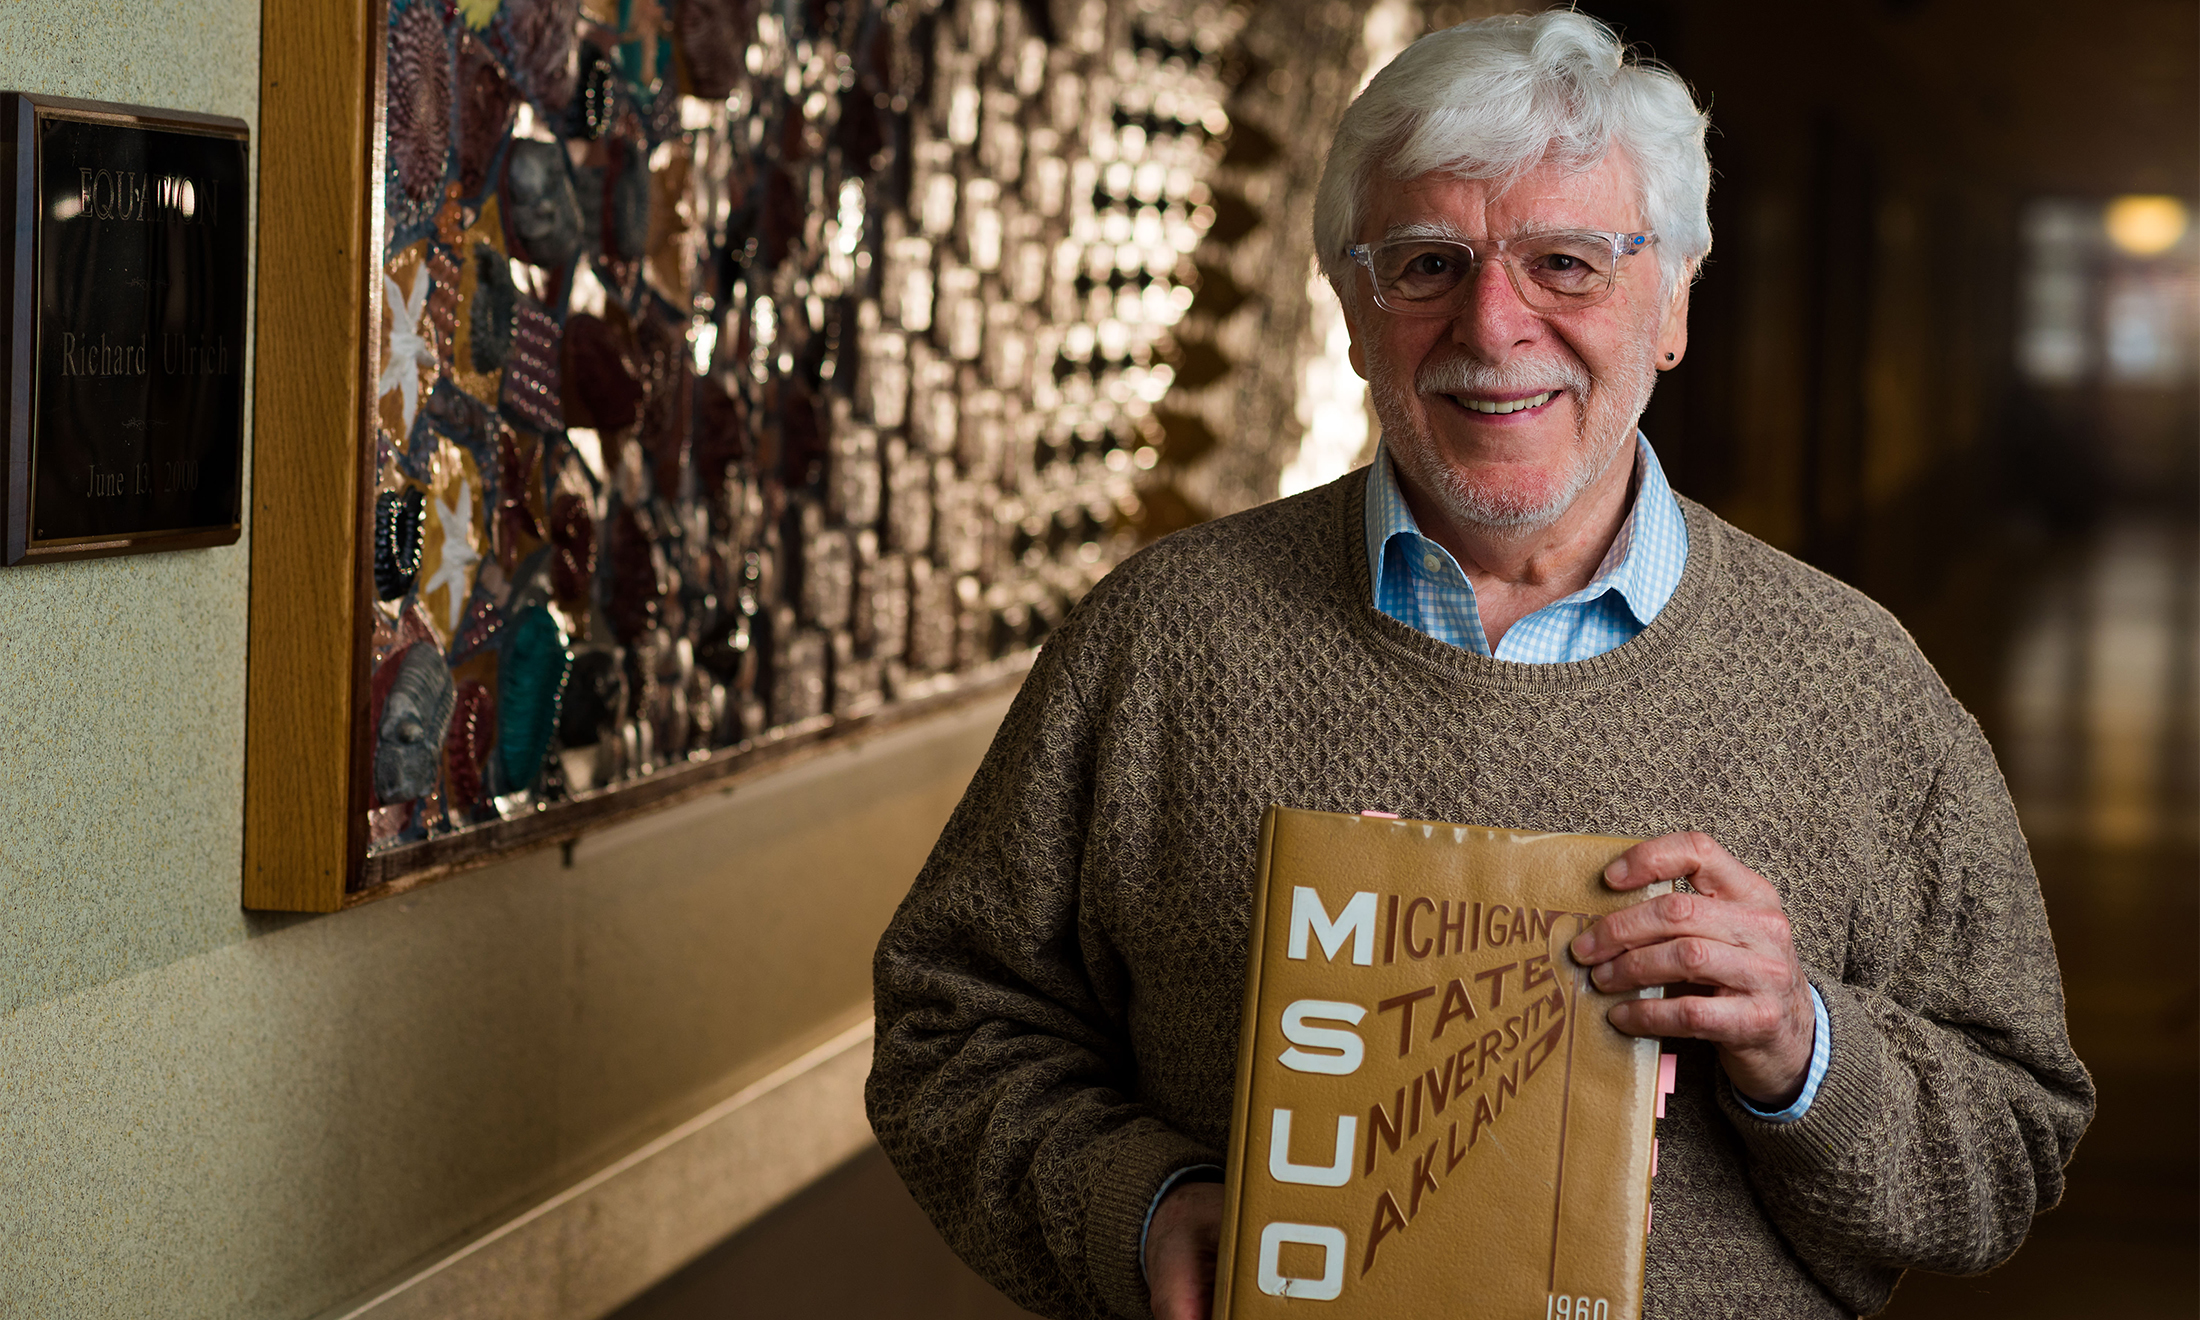 Oakland University graduate Al Monetta holds a Michigan State University Oakland yearbook